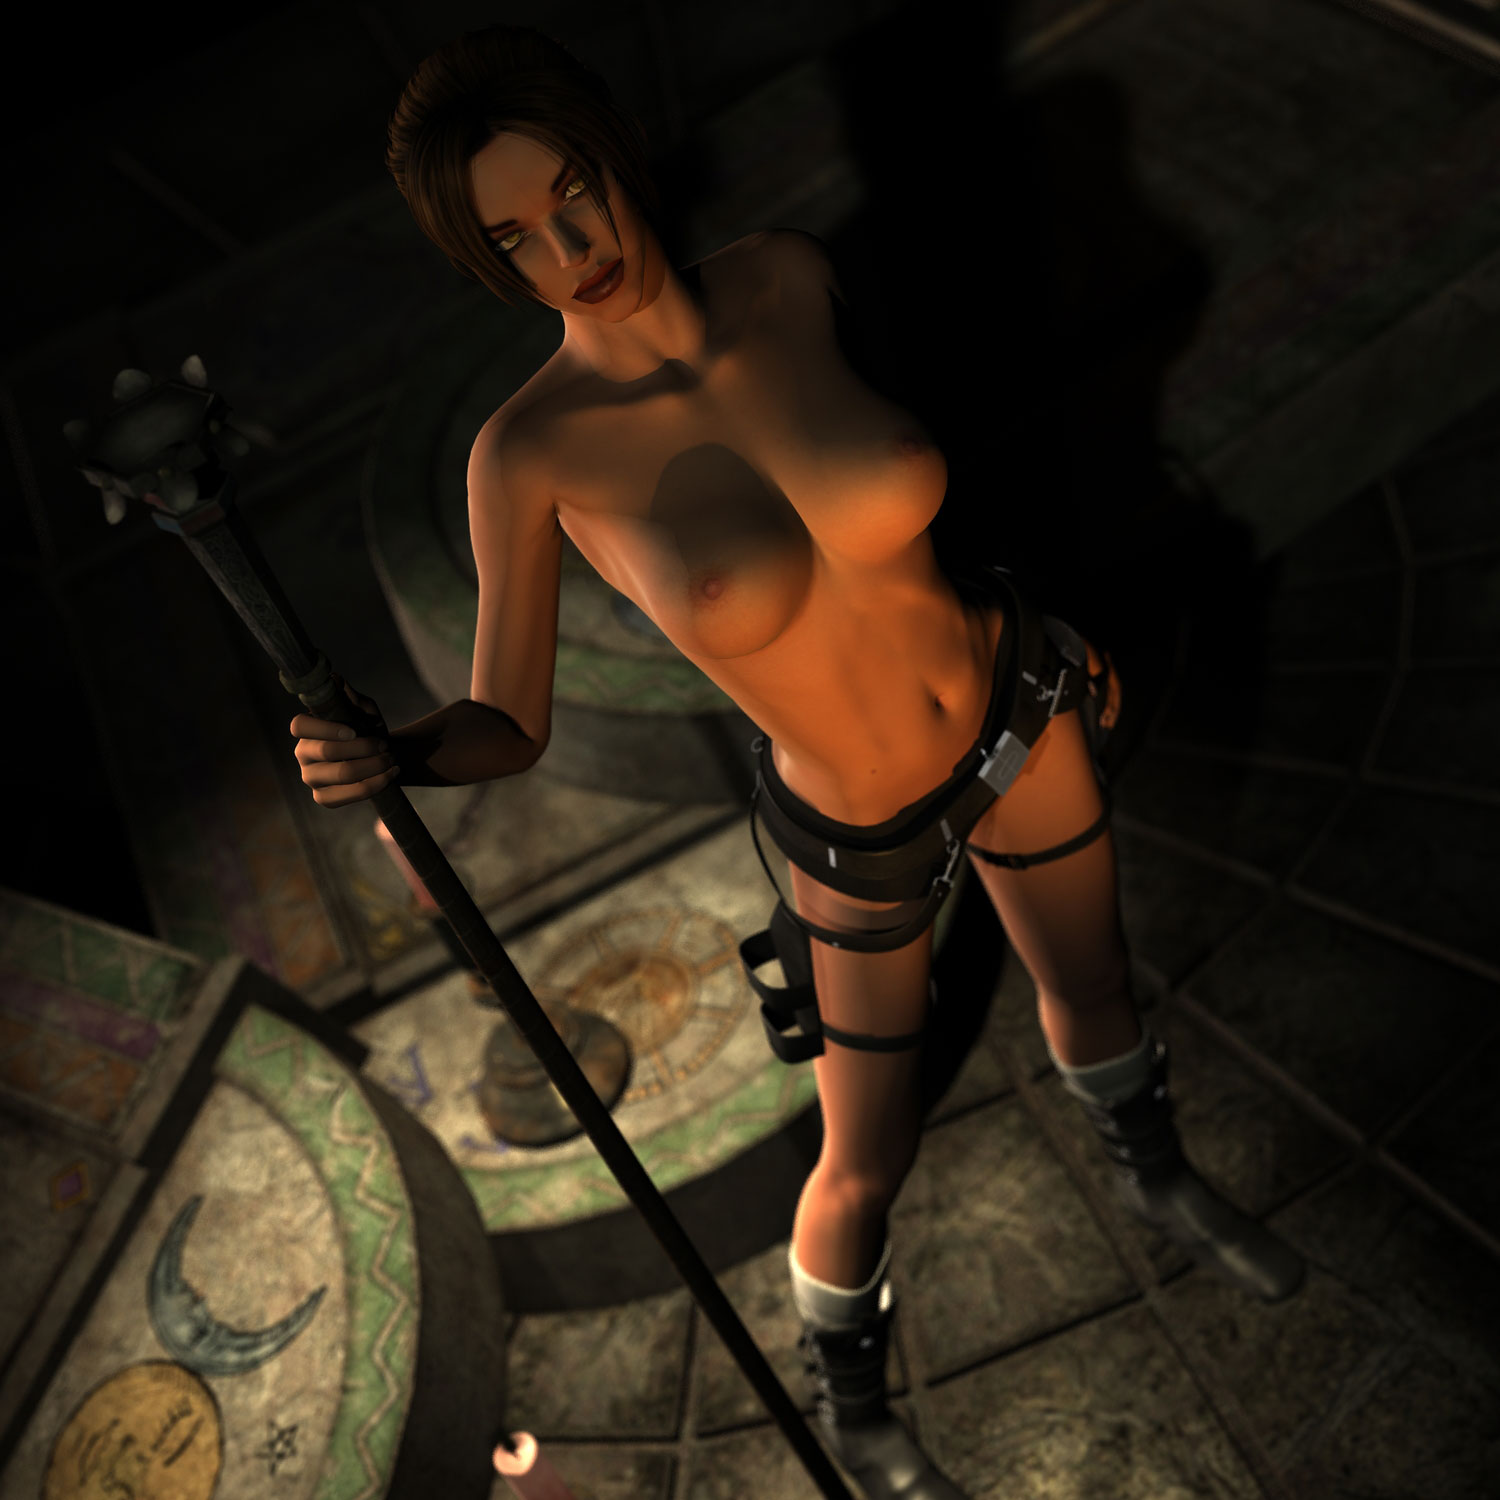 Tomb raider sexy cartoons cartoon scenes